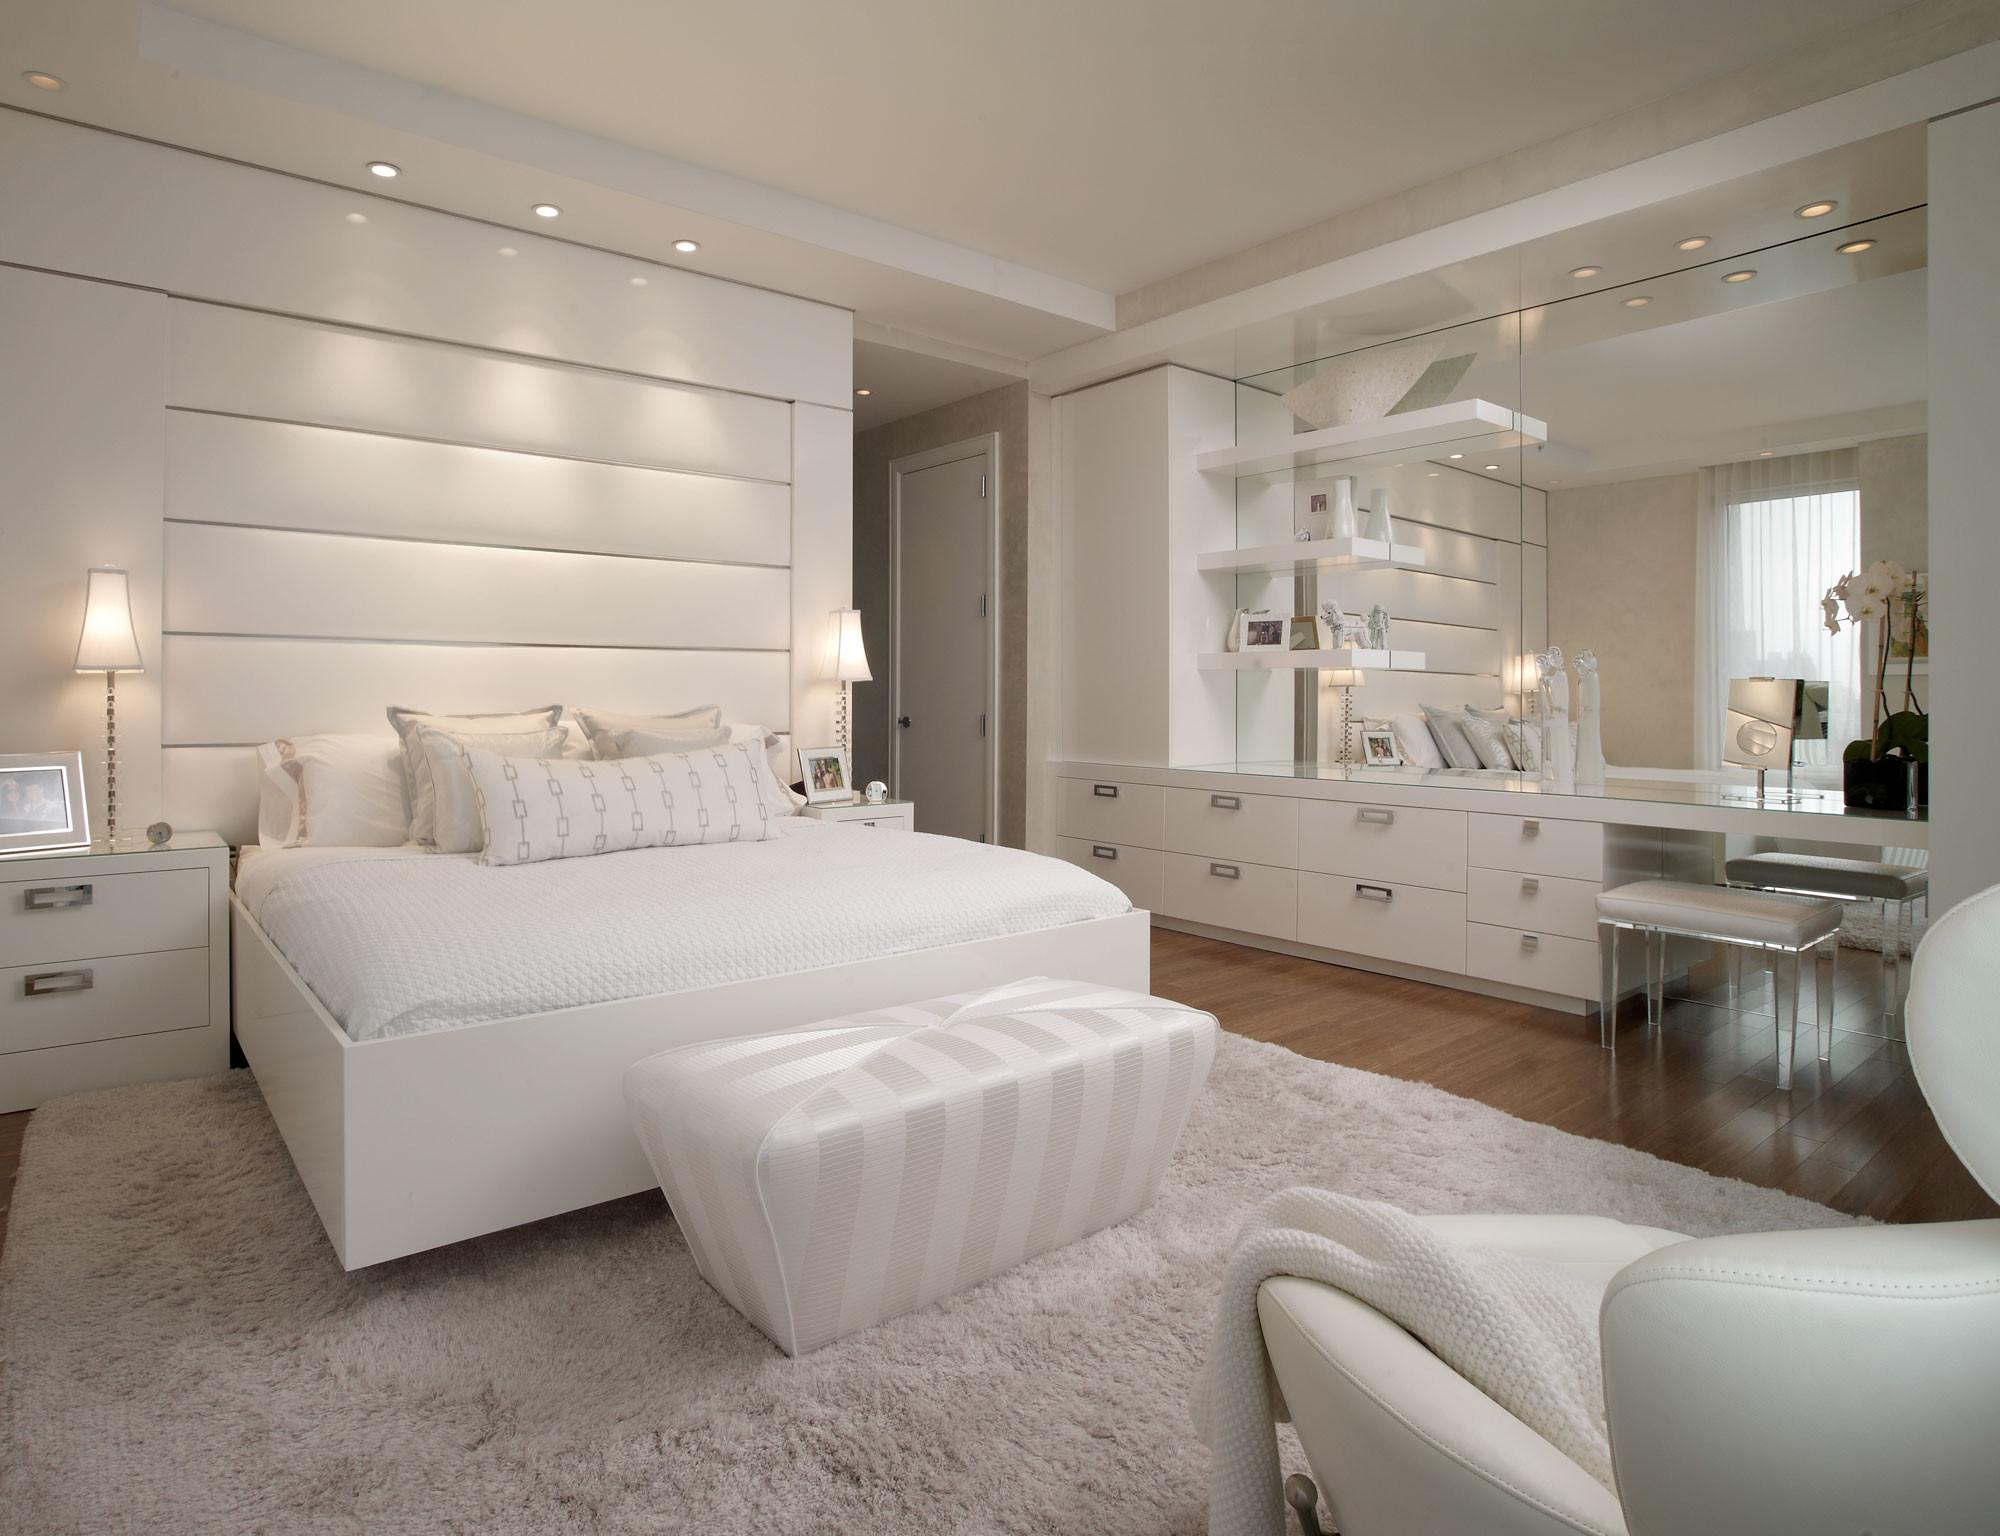 Modern Bedroom Decorating Ideas Inspirational Bedrooms